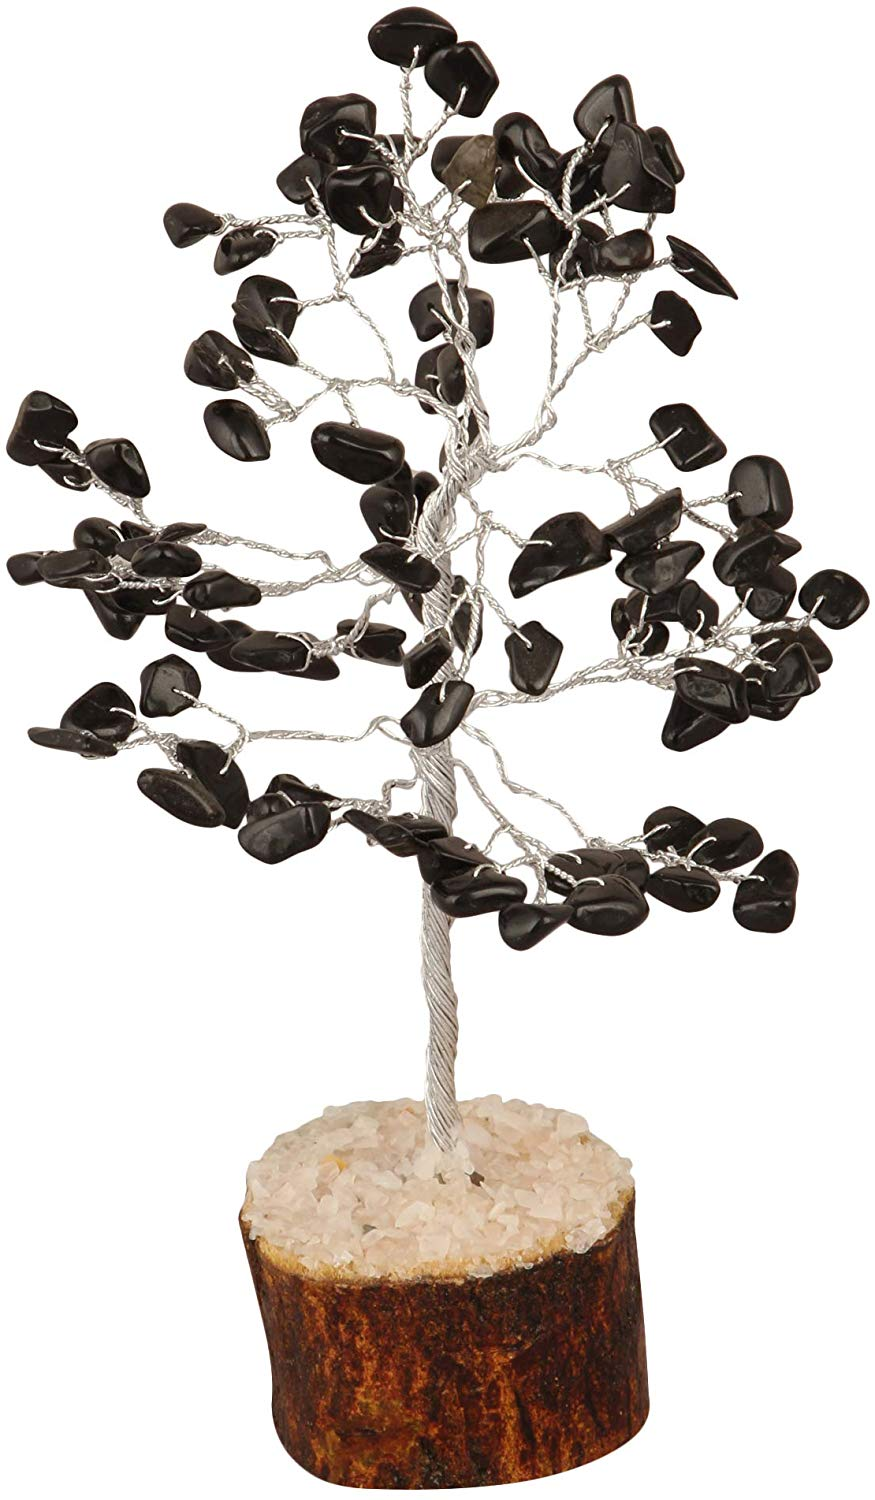 Black Tourmaline Gemstone Money Tree - BohoEntice